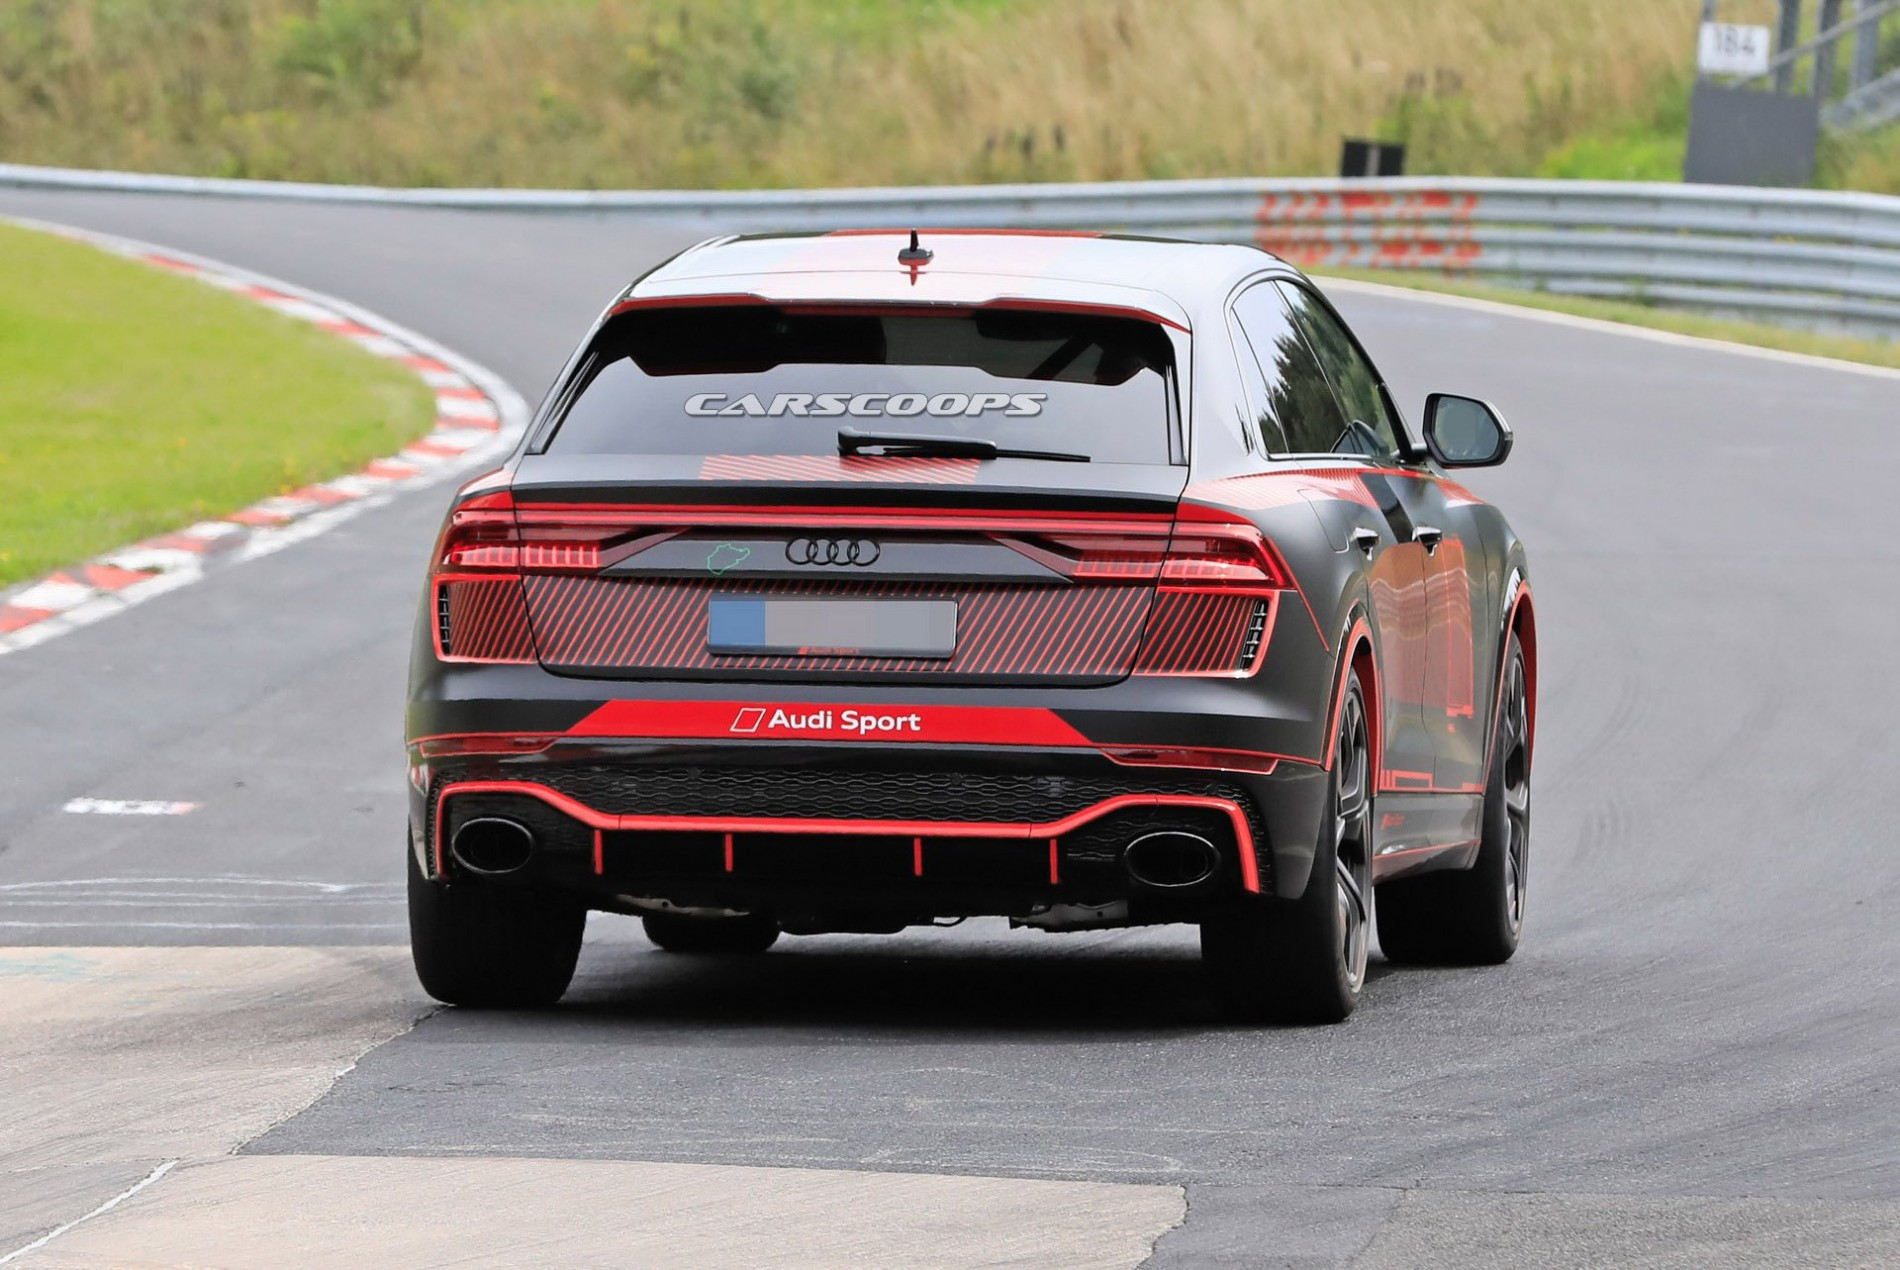 Audi RS Q8 poze spion - Audi RS Q8 poze spion